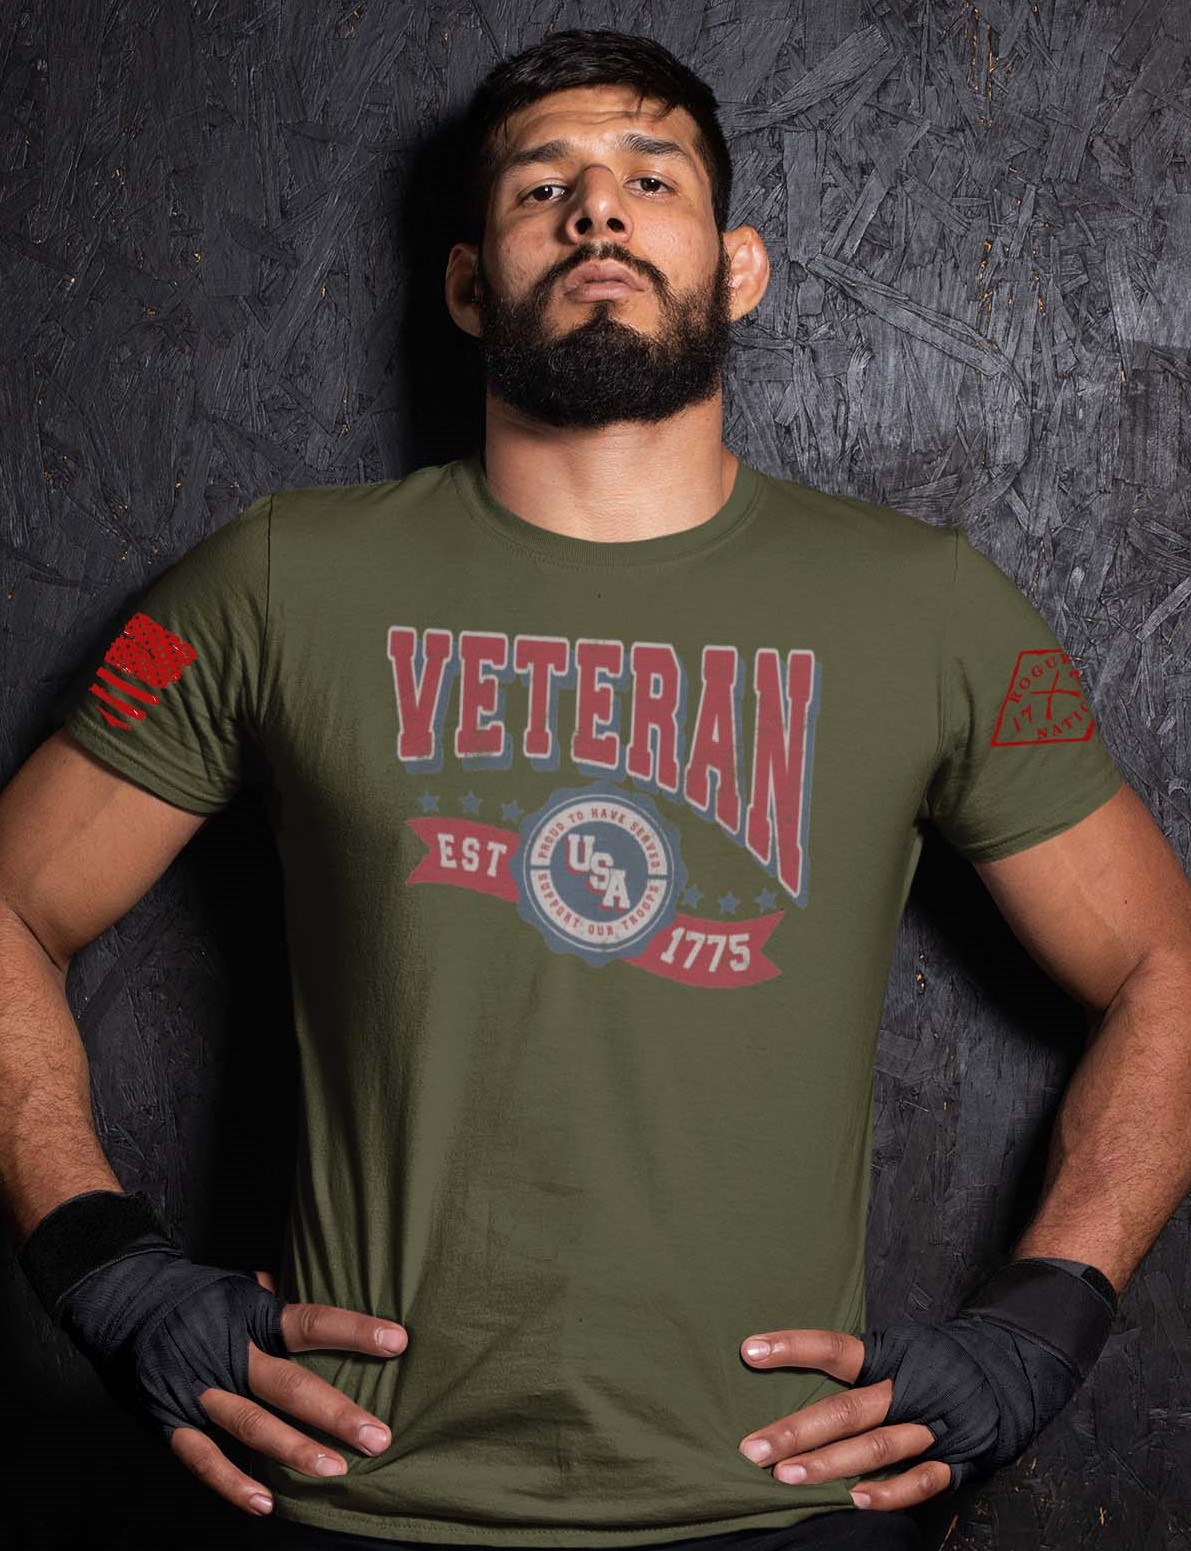 Veteran in the USA on a Army T-Shirt Men's